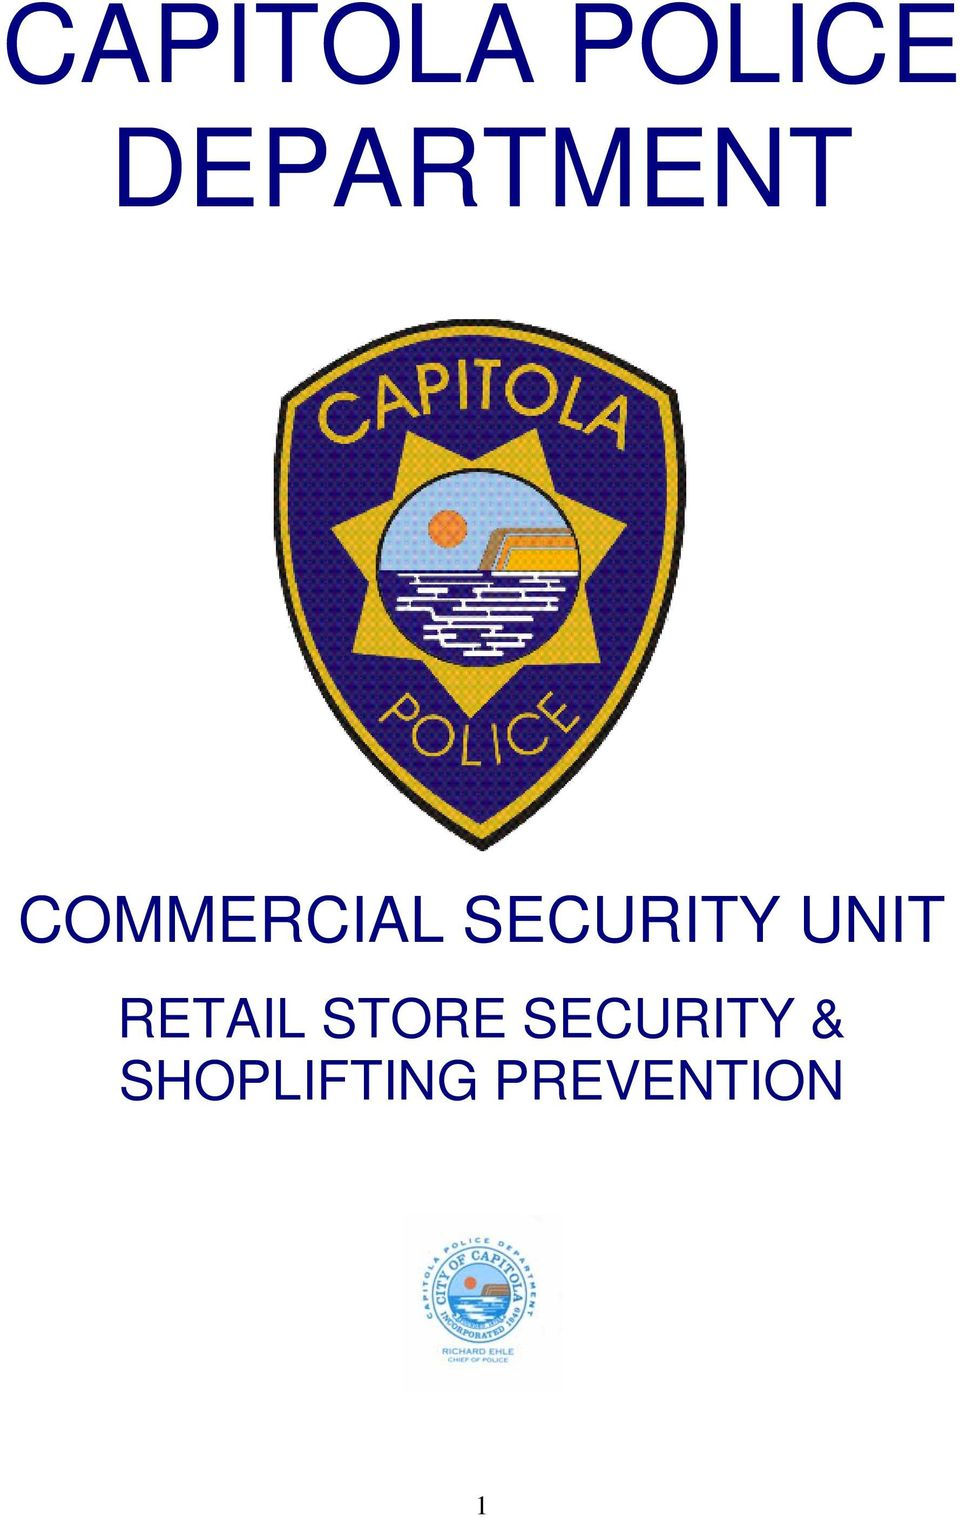 SECURITY UNIT RETAIL